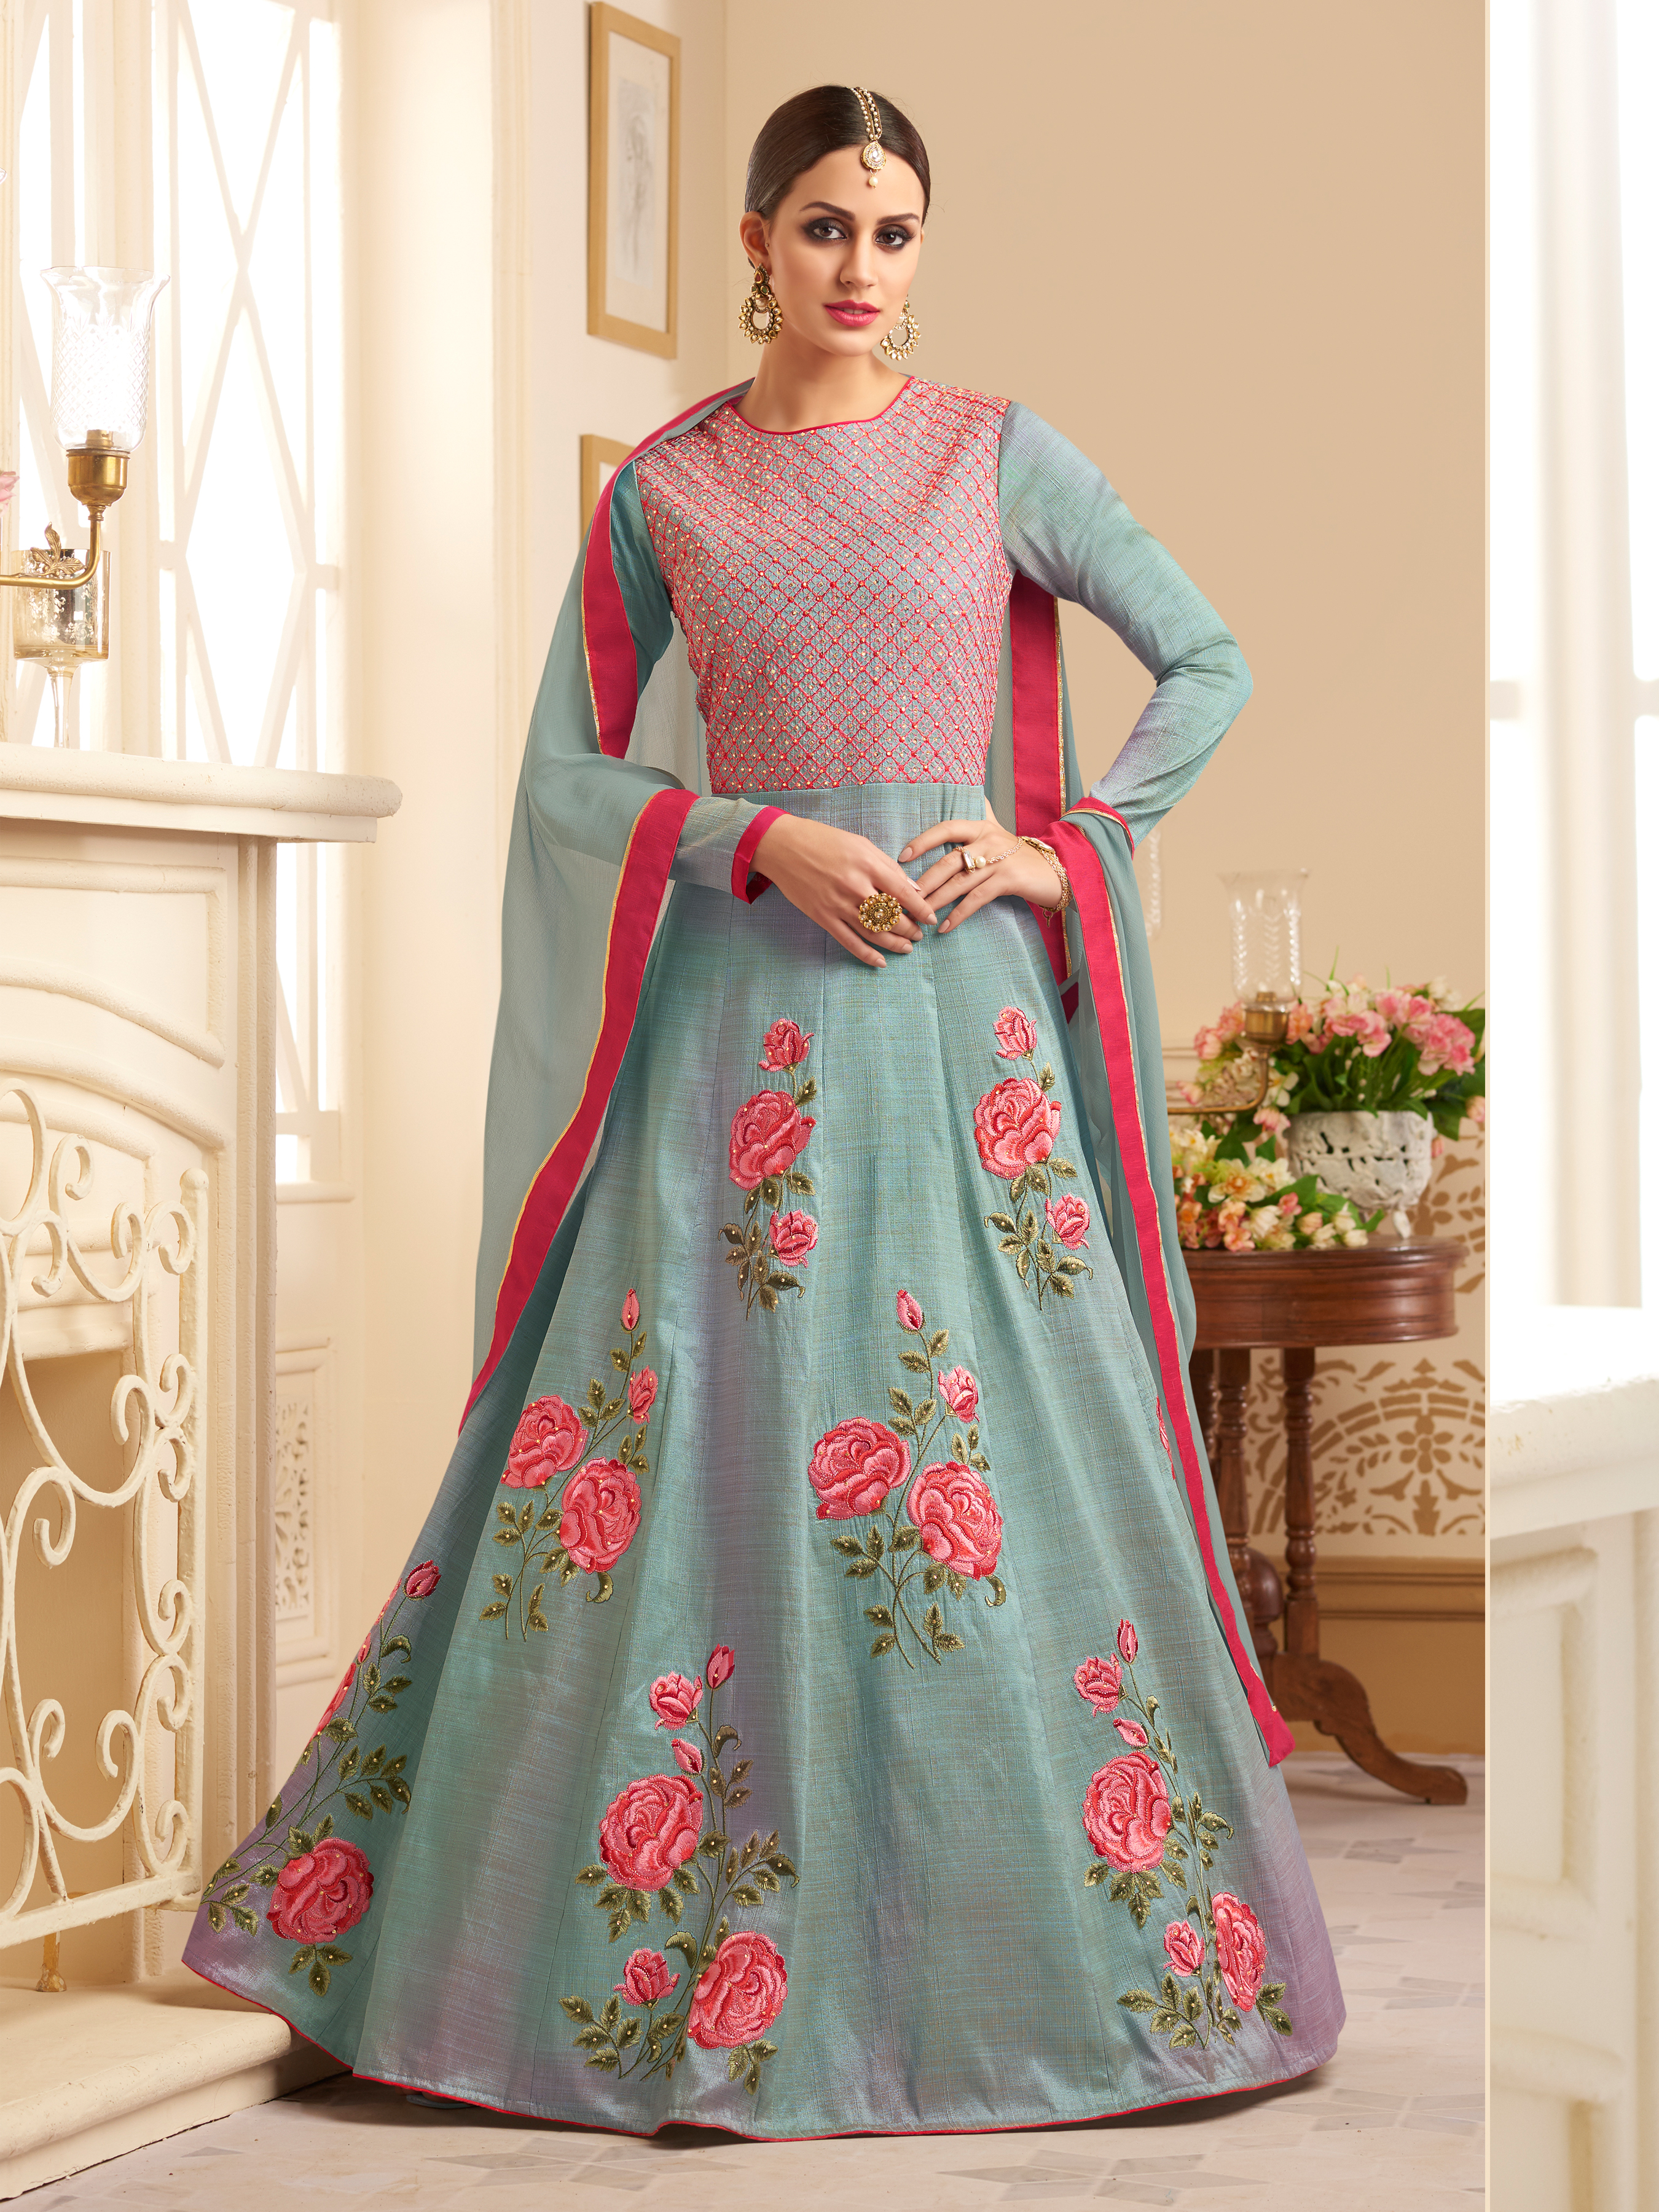 Designer Faux Georgette Turqoise Heavy Embroidered Salwar Suit